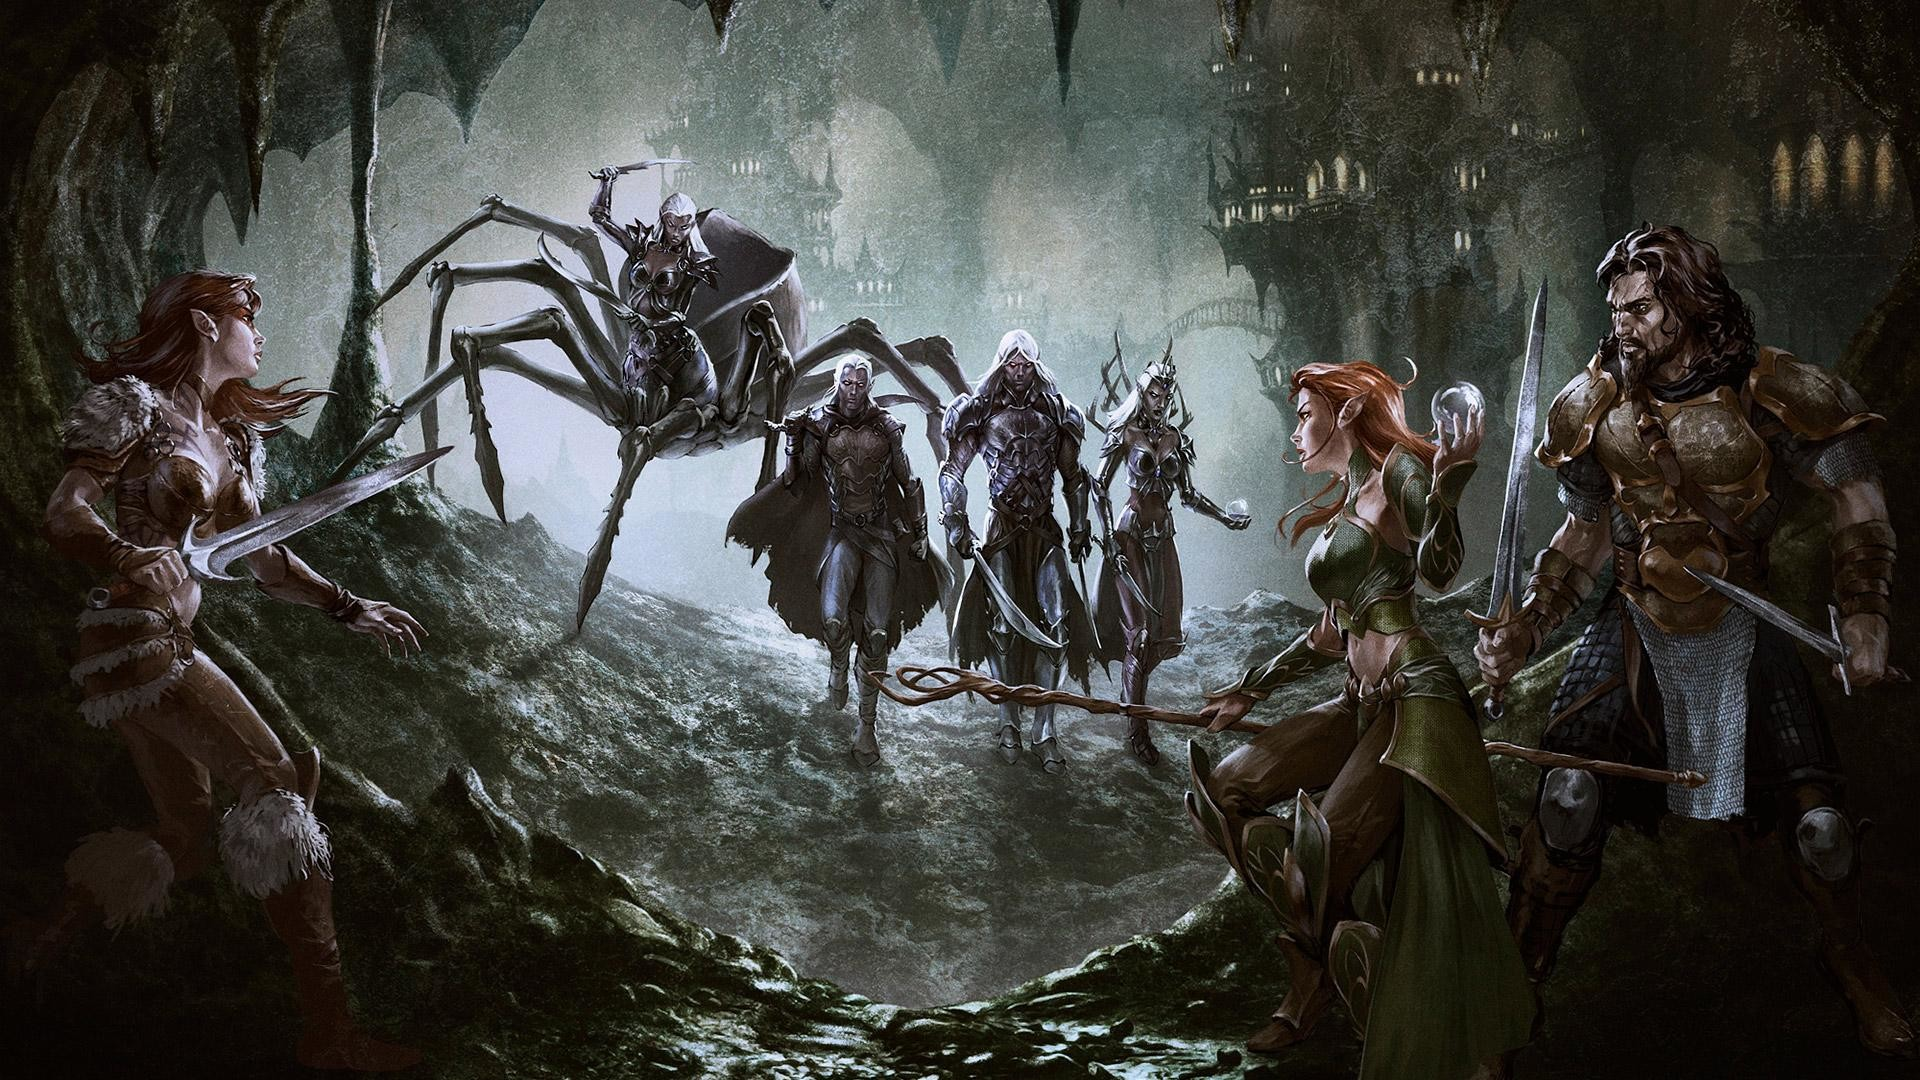 wallpaper.wiki-Dungeons-and-dragons-online-drows-PIC-